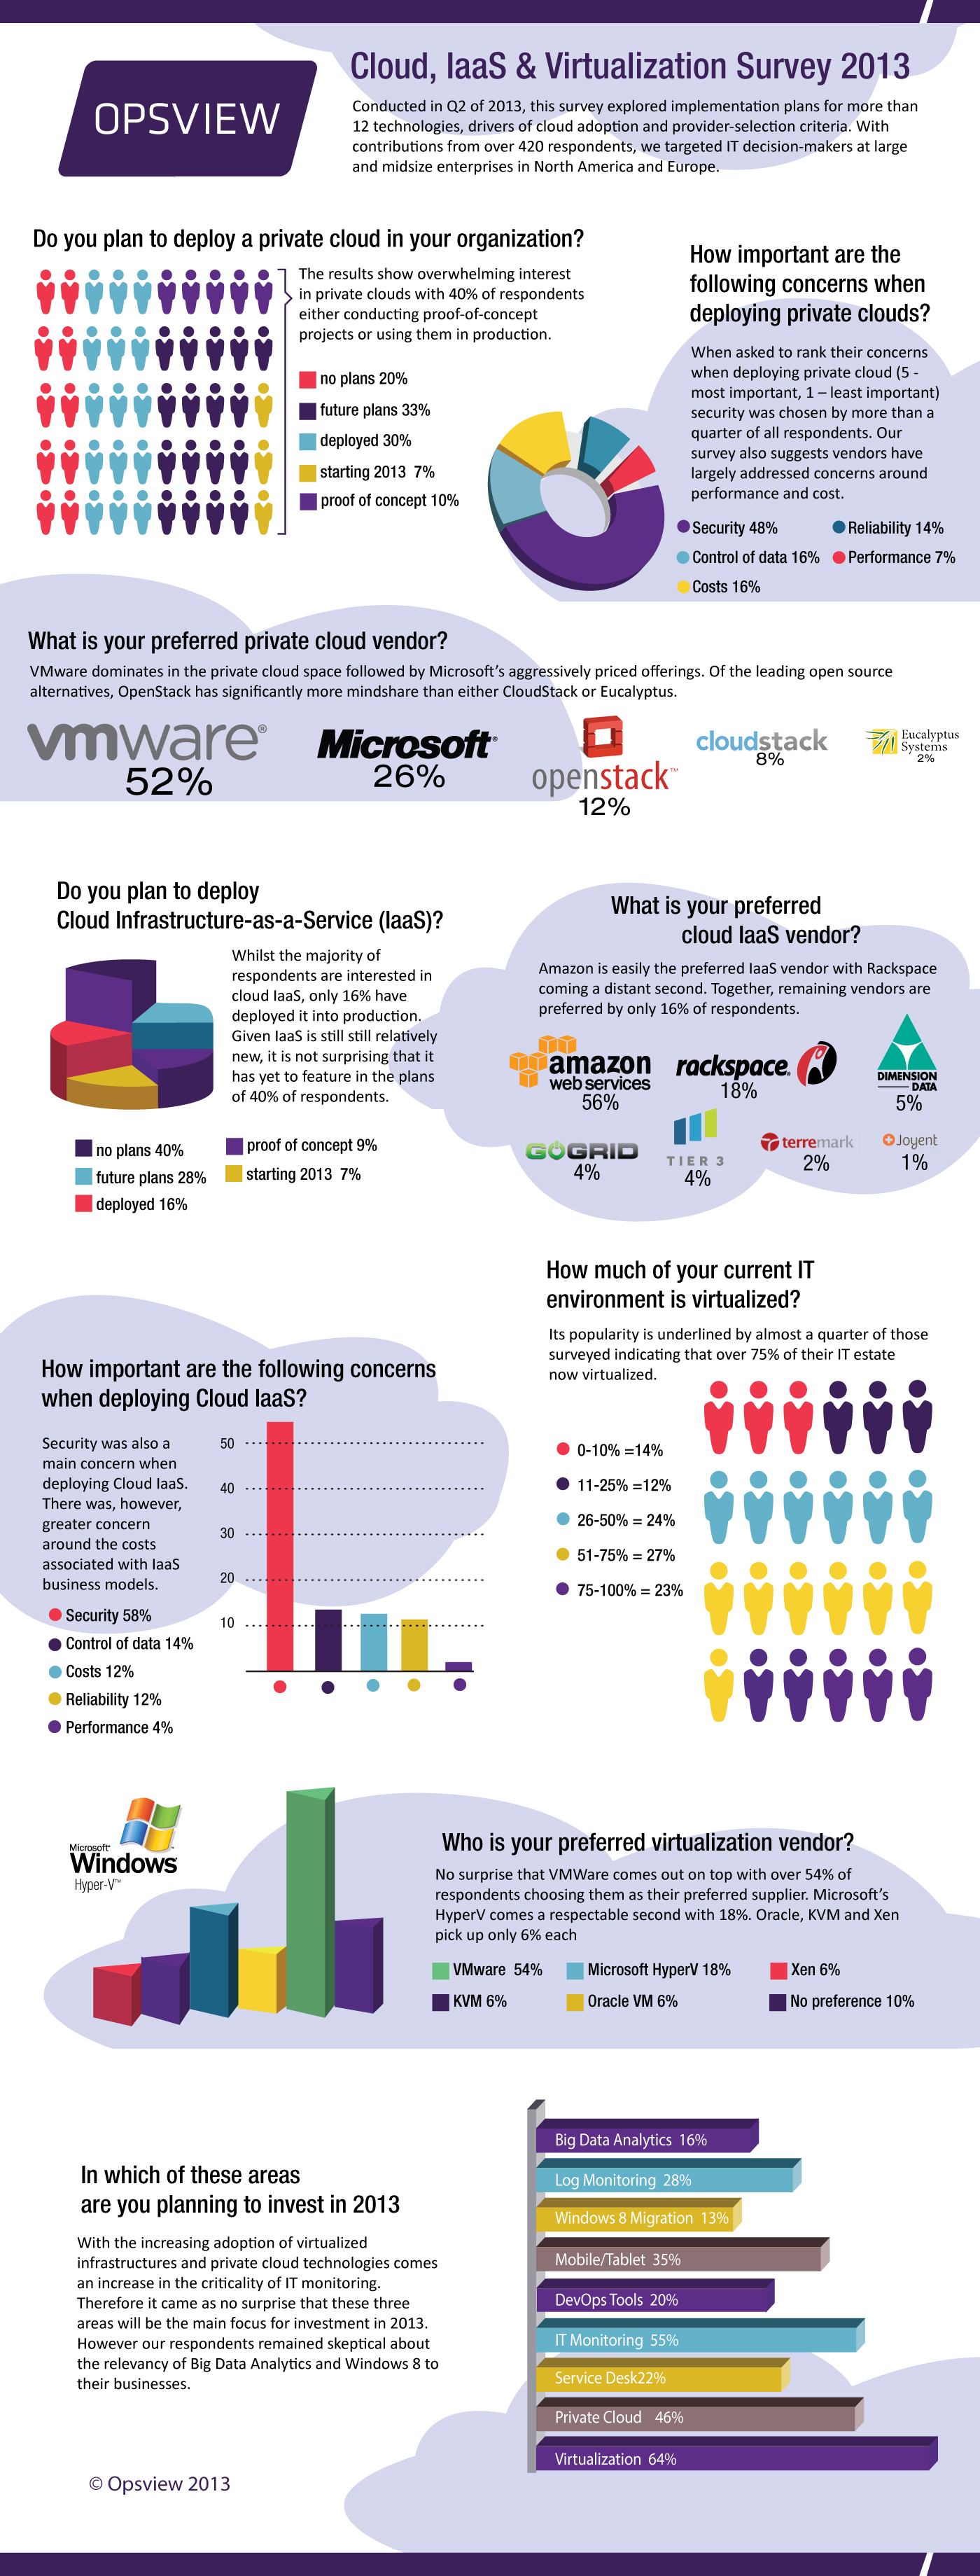 Opsview Cloud, IaaS and Virtualization Survey 2013